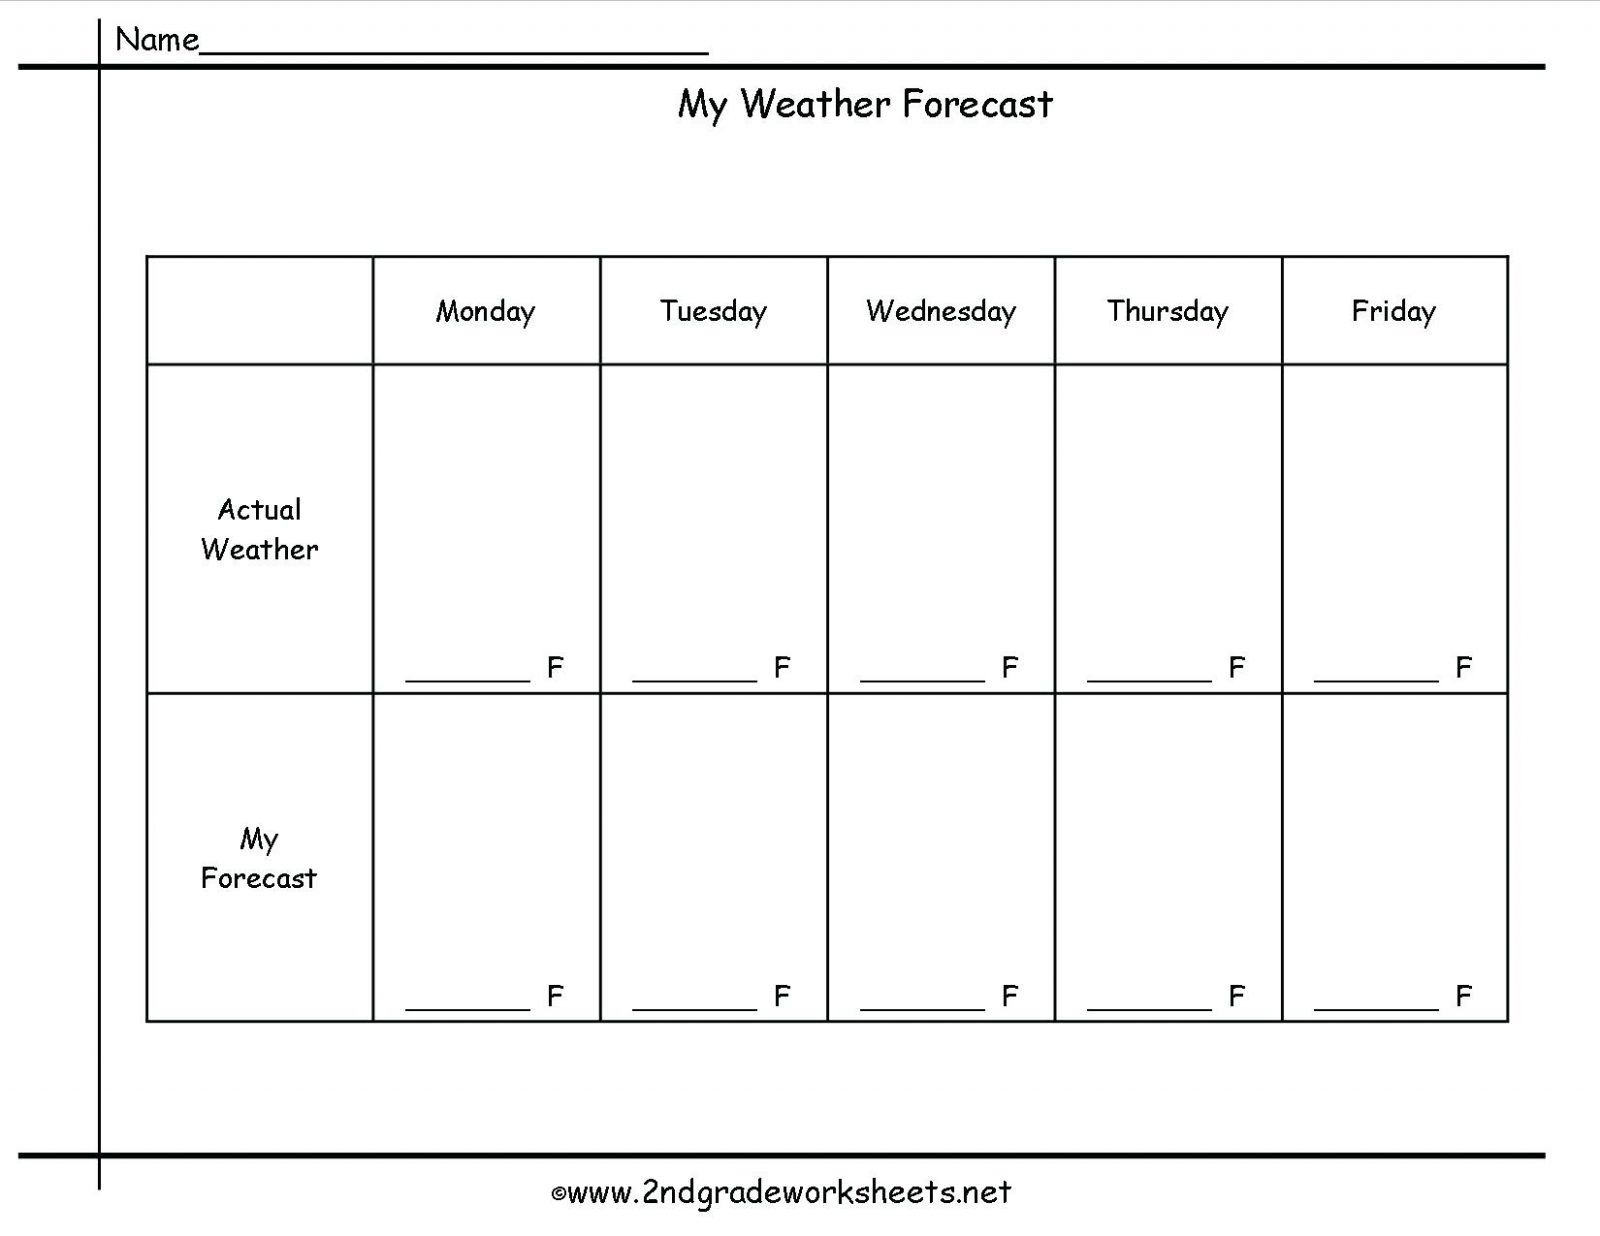 Weather Forecast Excel Spreadsheet Pertaining To Report